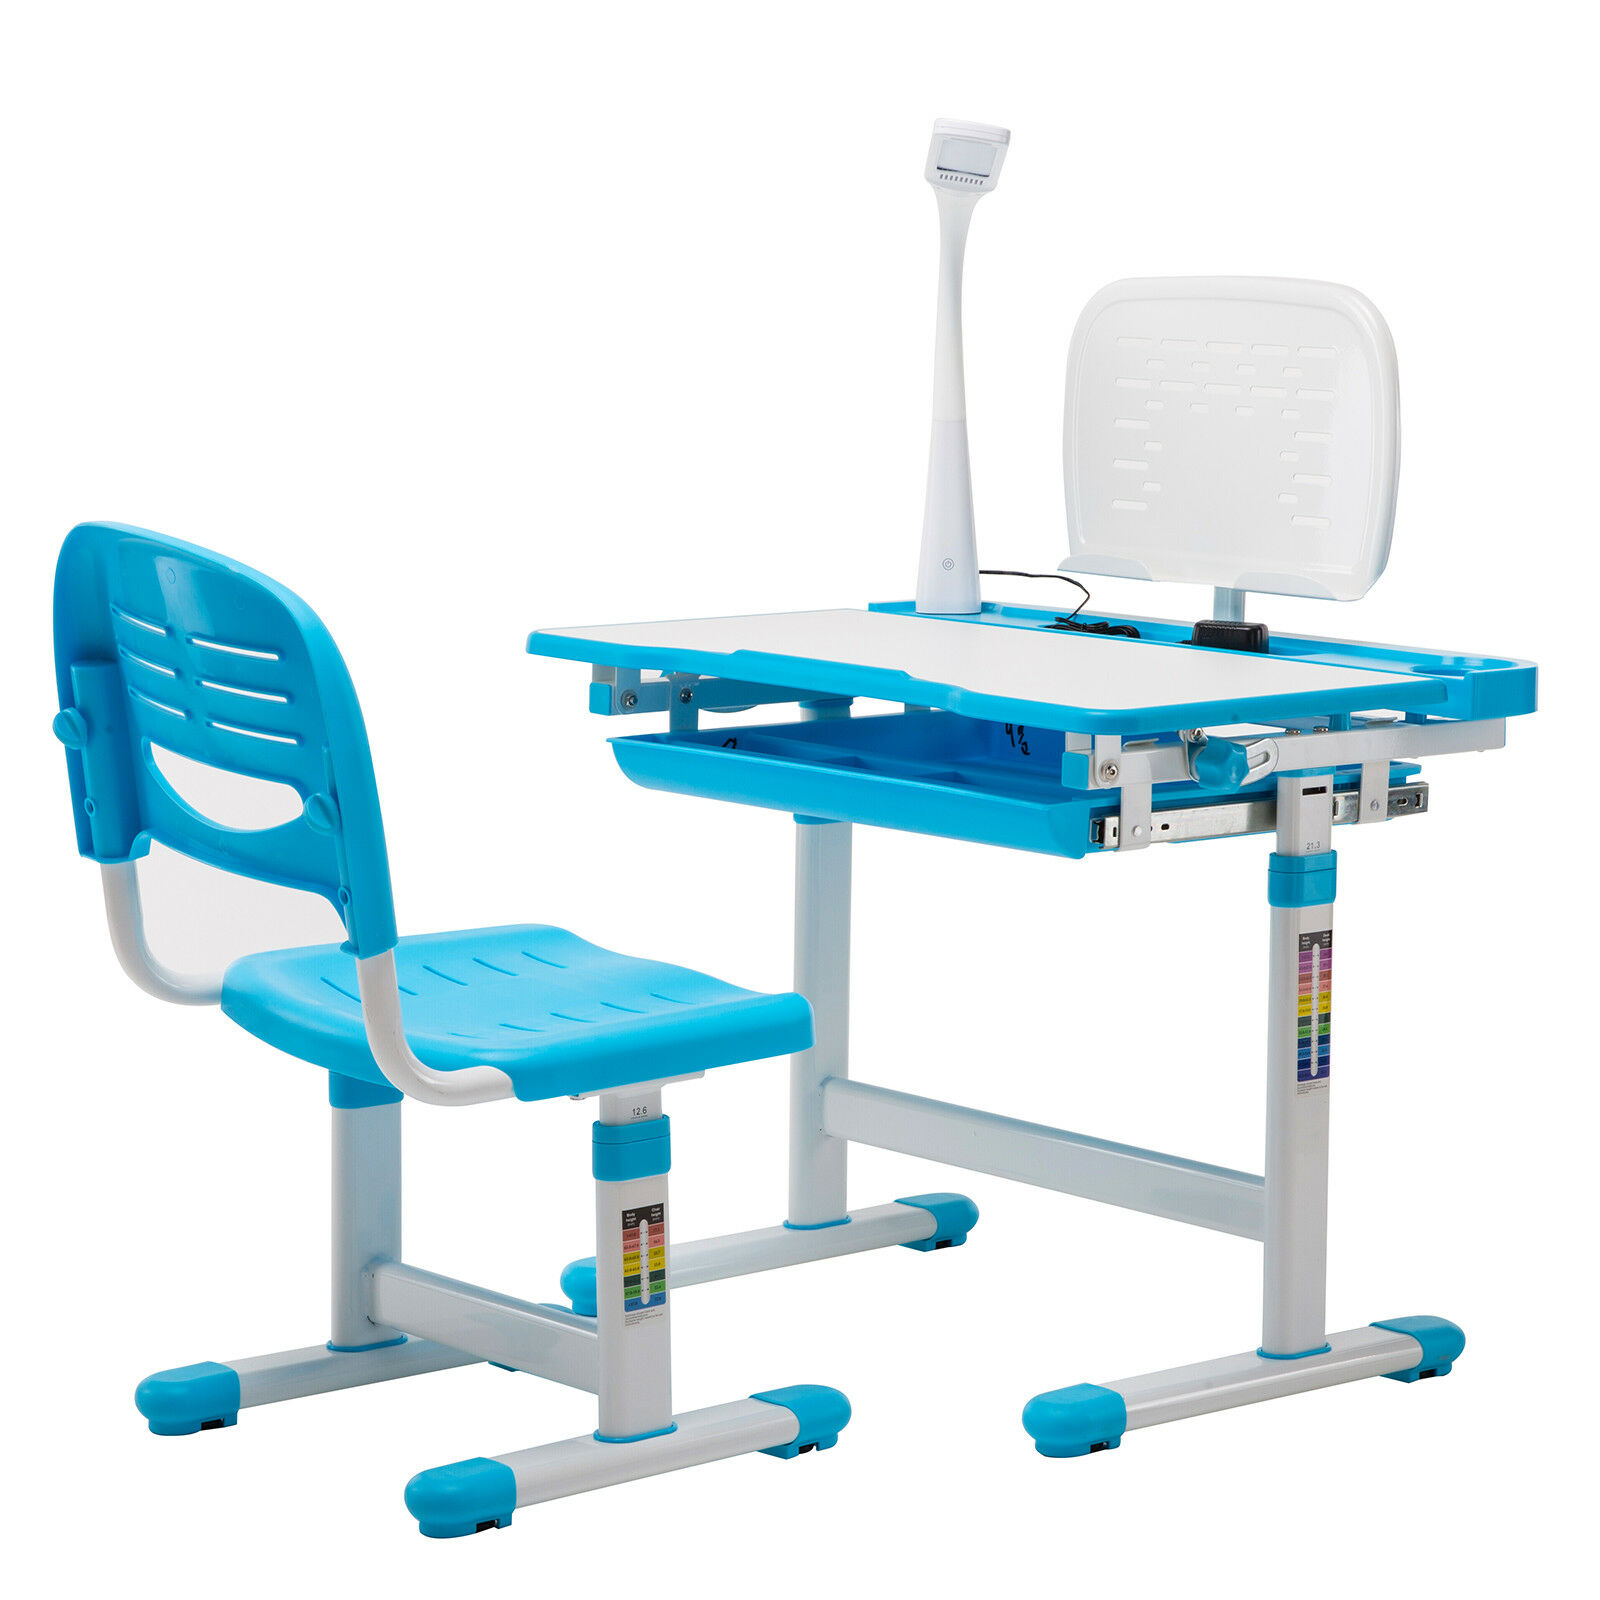 Study Table And Chair Details About Blue Adjustable Children S Study Desk Chair Set Child Kids Table W Desk Led Lamp